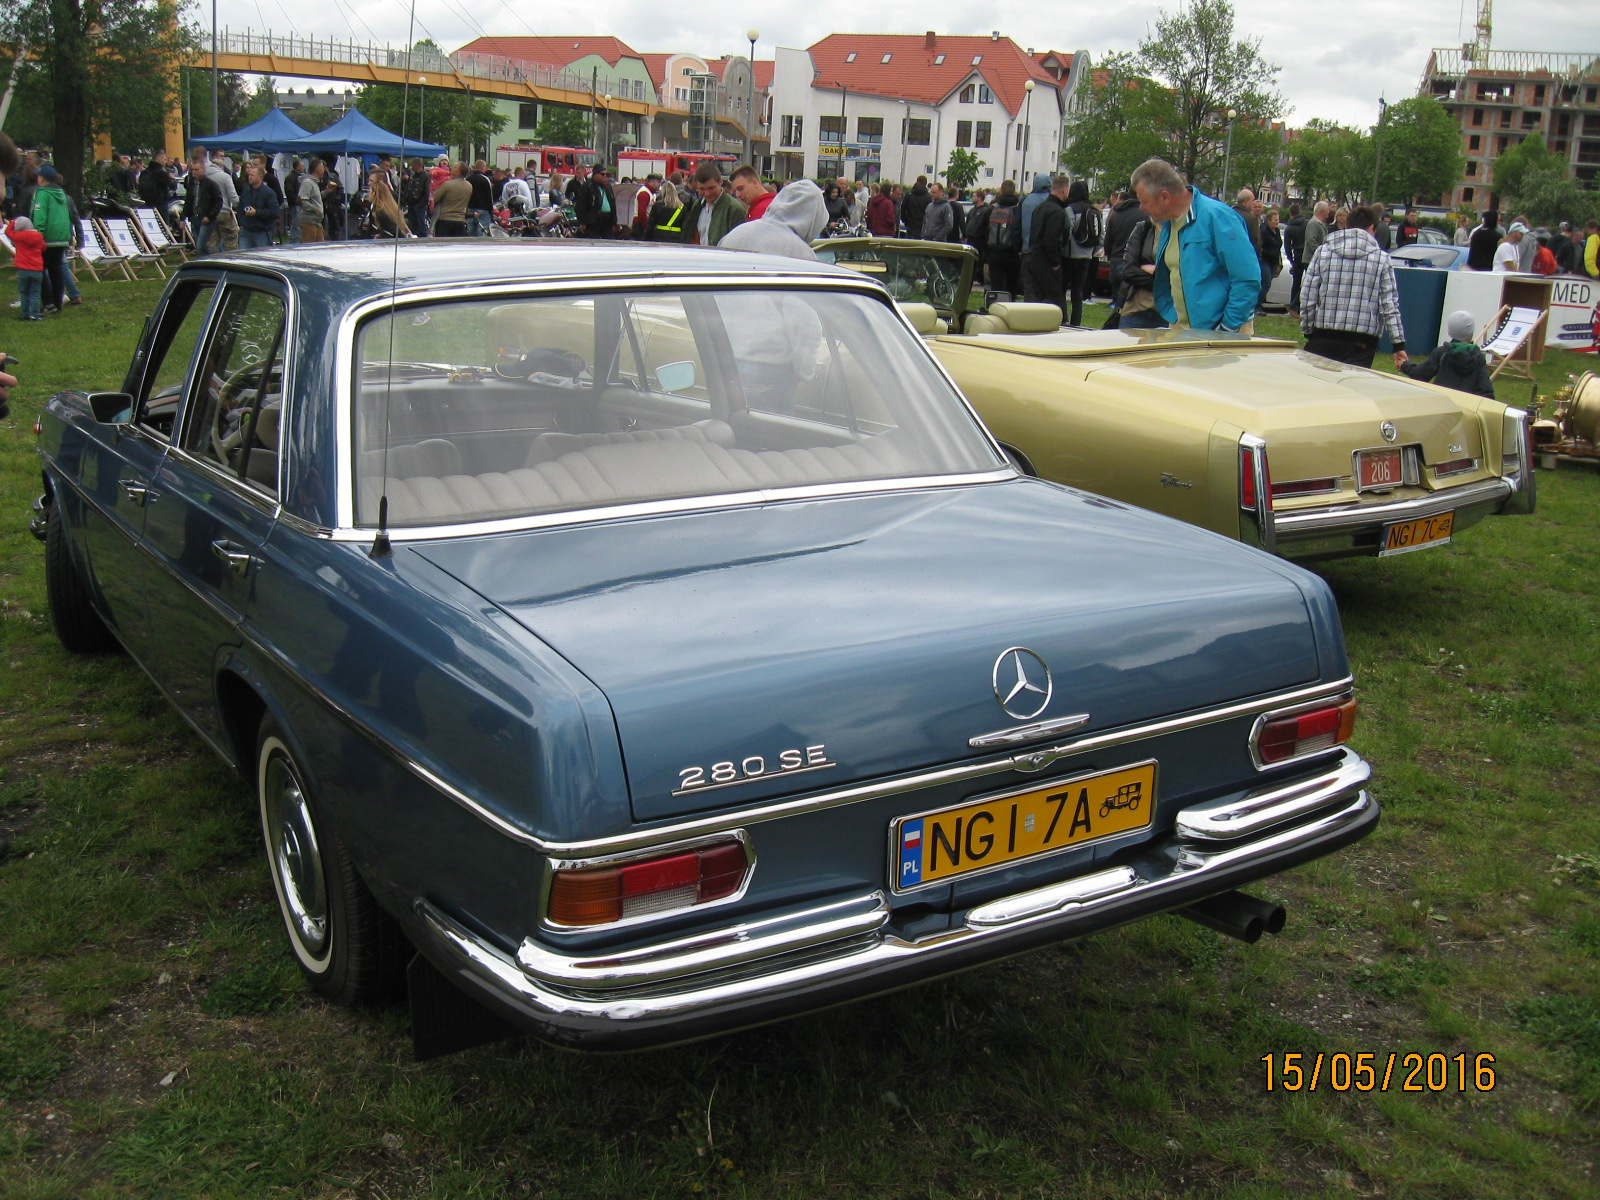 http://124coupe.pl/hosting/images/1463321715.jpg